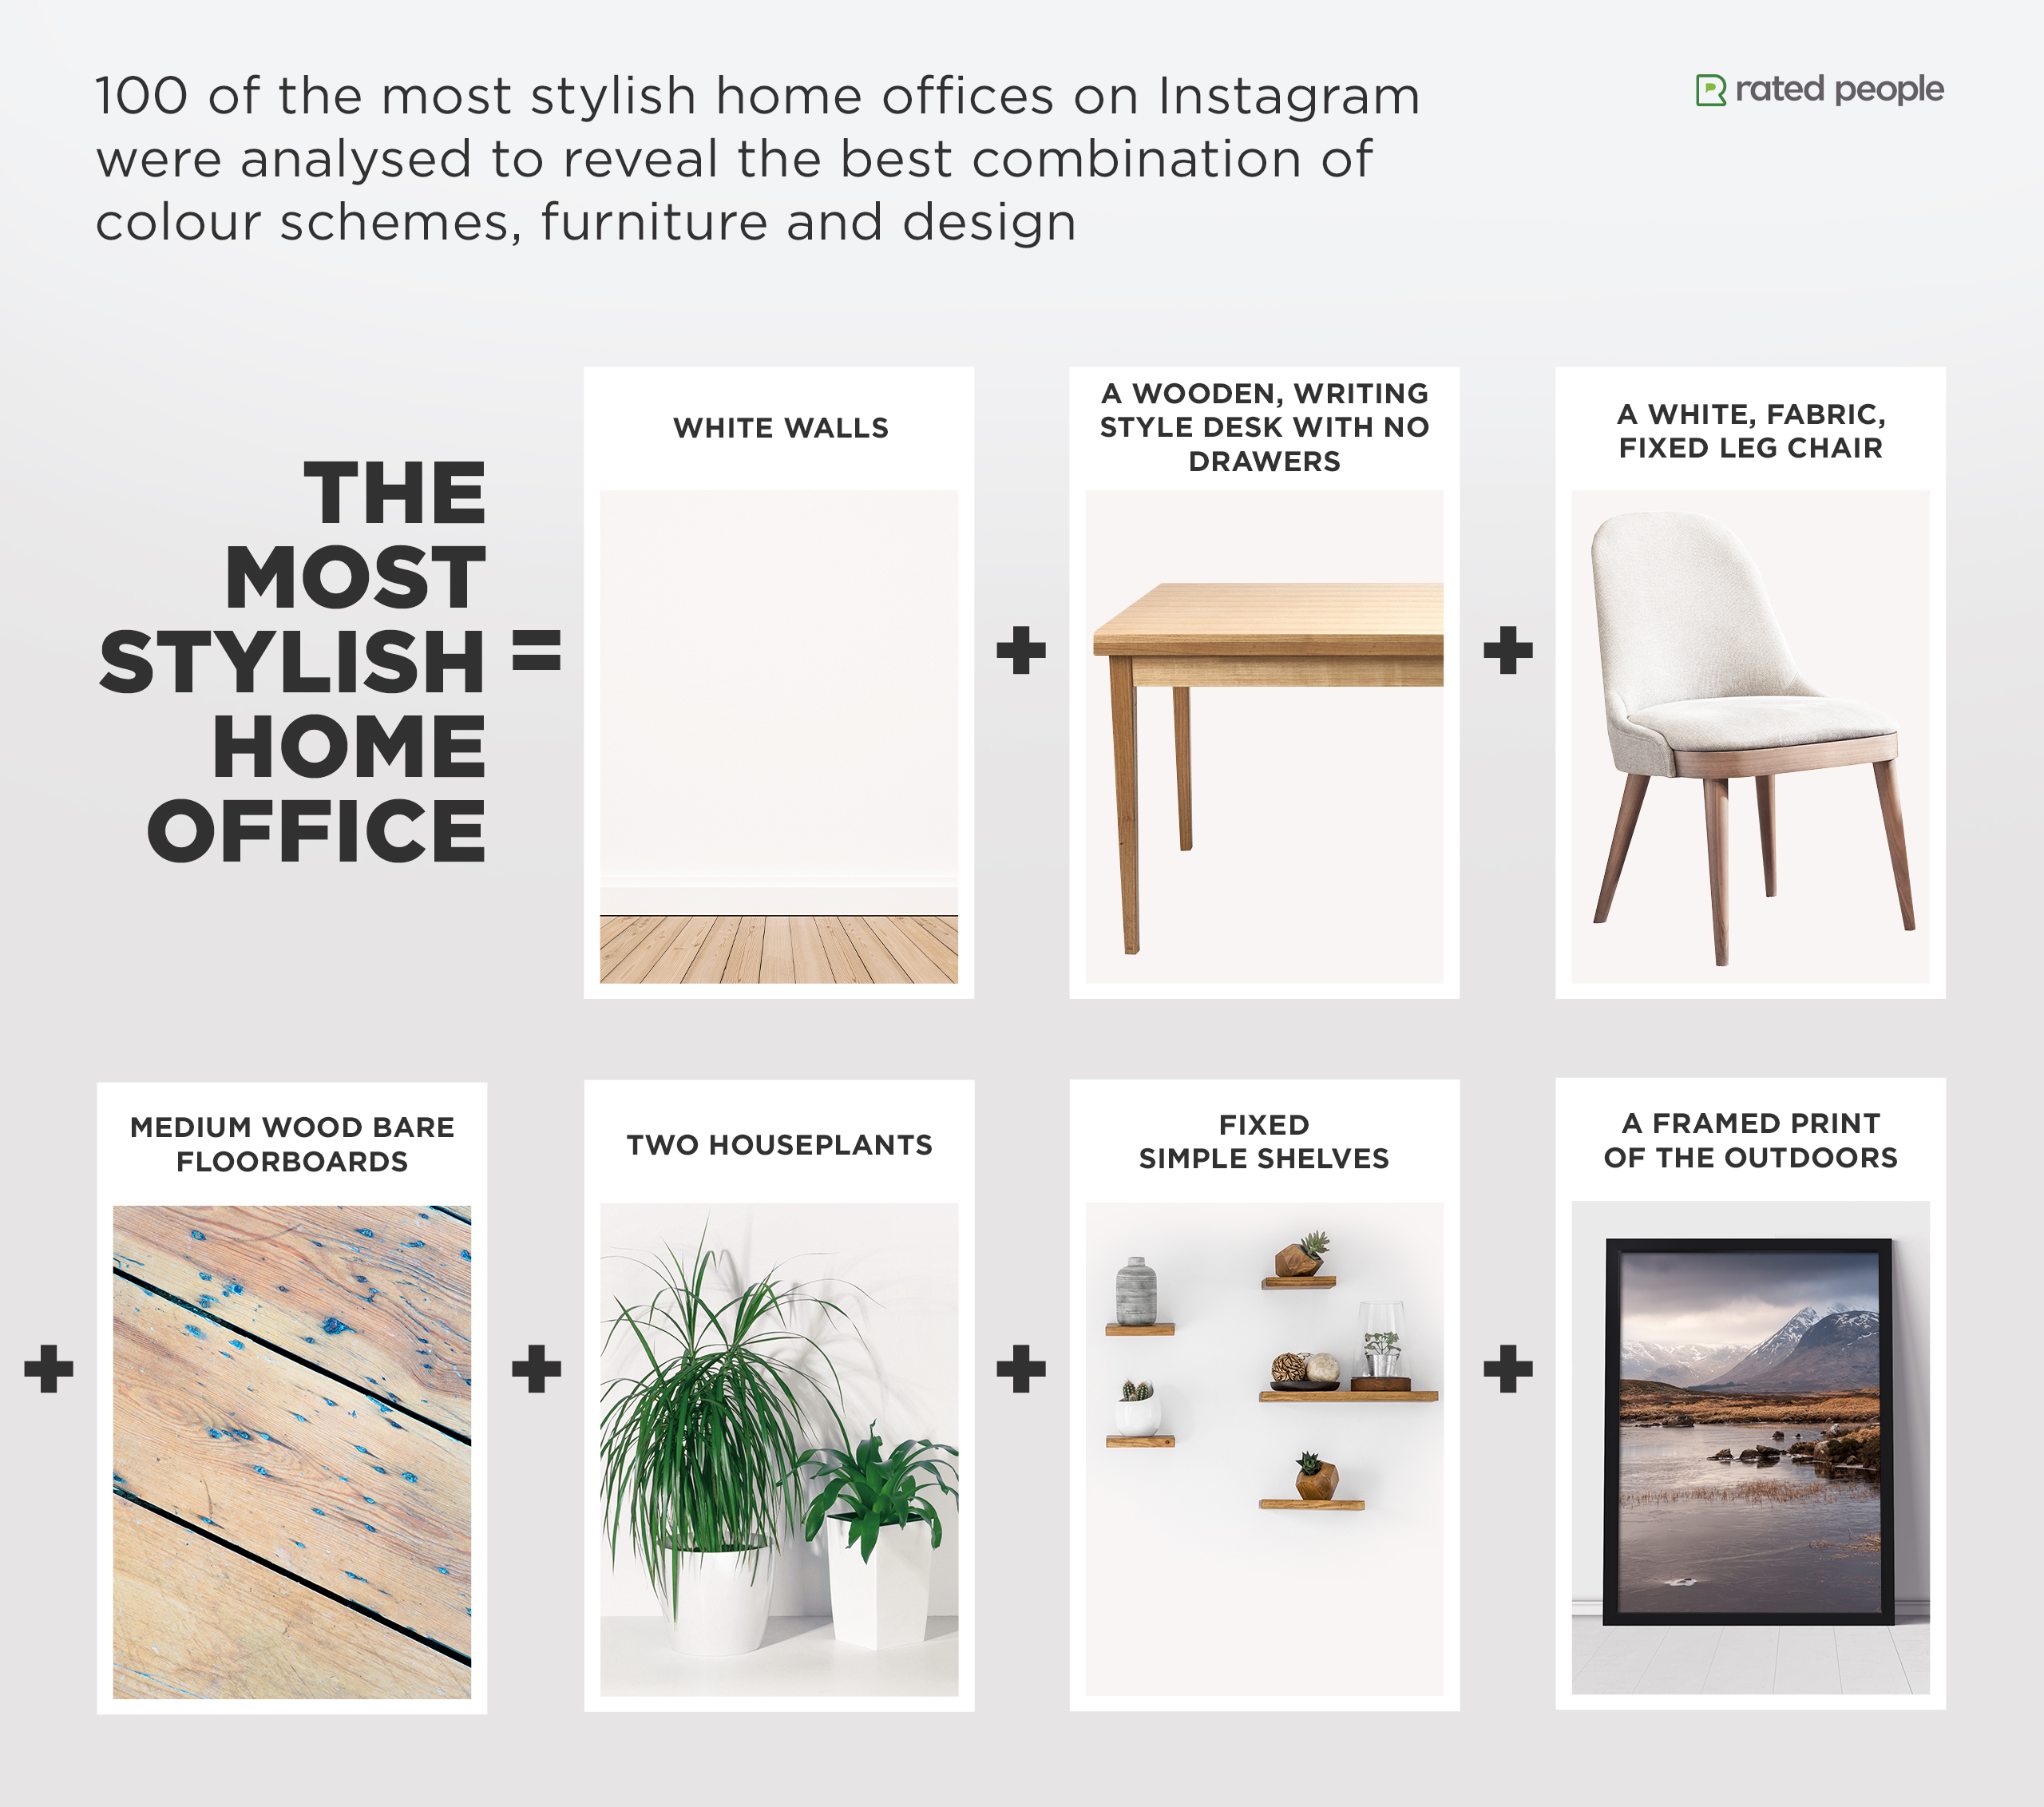 The elements of the most stylish home office according to Instagram users.